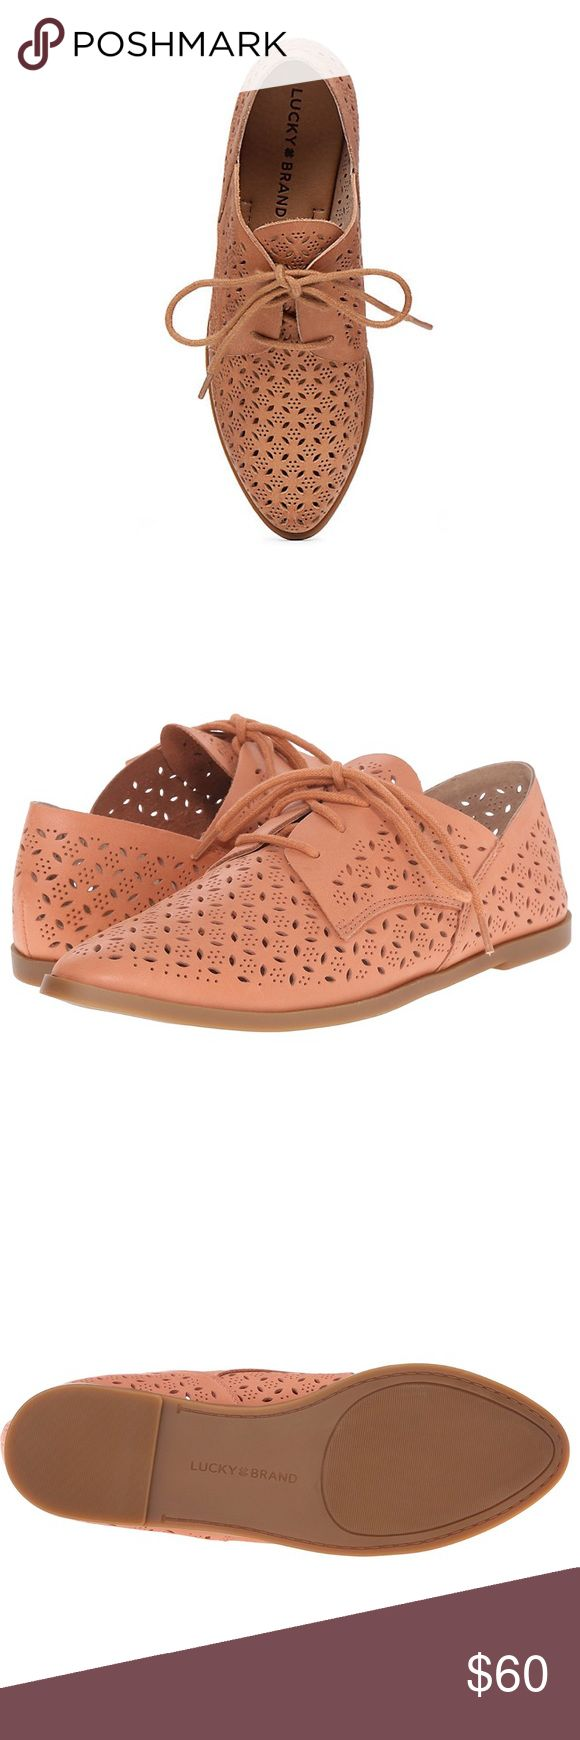 Lucky Brand Perforated Oxfords Oxford flats featuring a lace-up closure and textured detailing. Size 7 Color: Peony Pink/Nude Like  • 0.43 inches high • Leather upper, synthetic lining, rubber outsole Lucky Brand Shoes Flats & Loafers